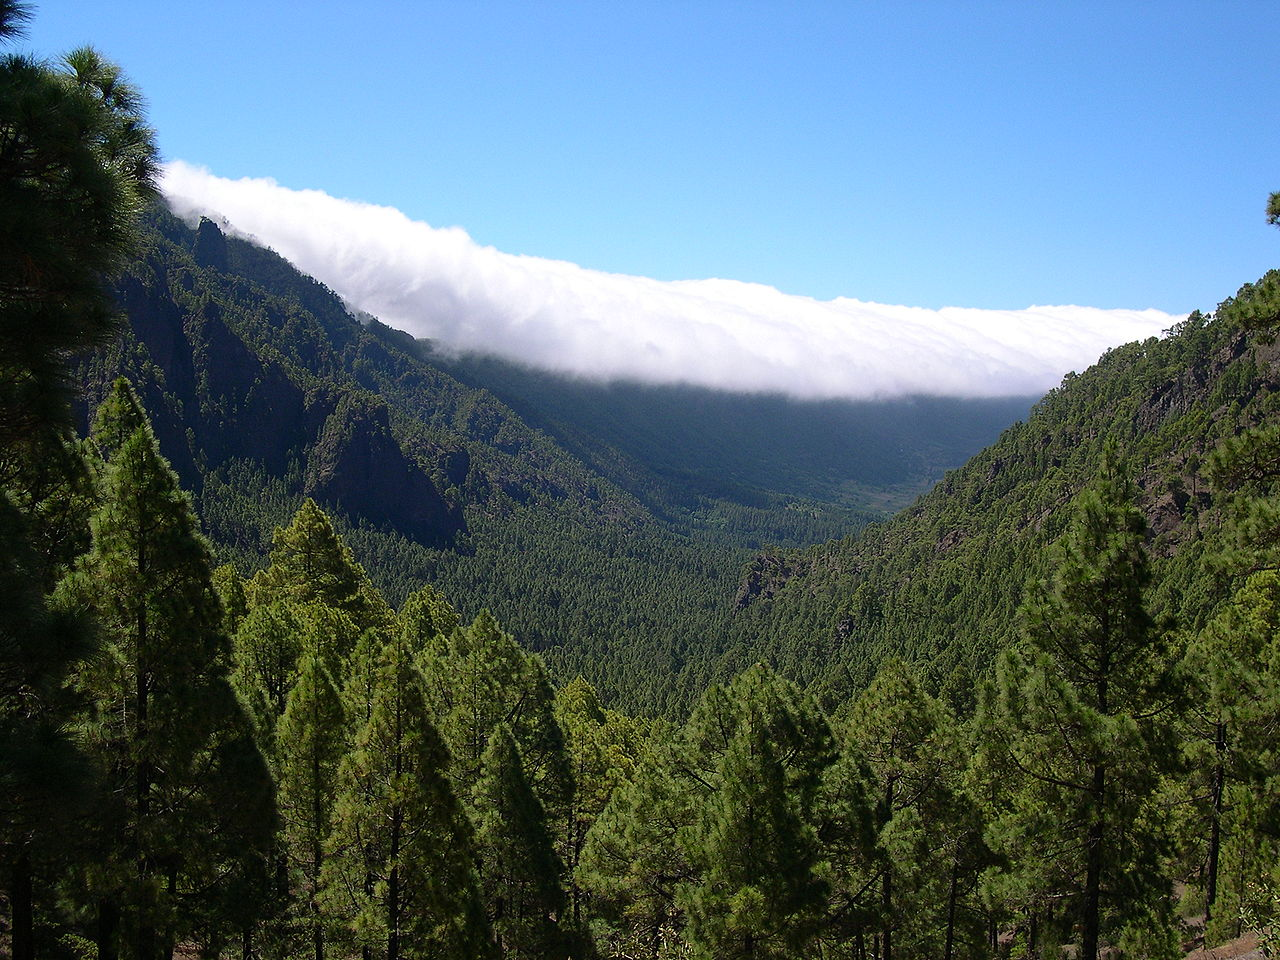 La Palma by Luc Viatour Wikimedia Commons